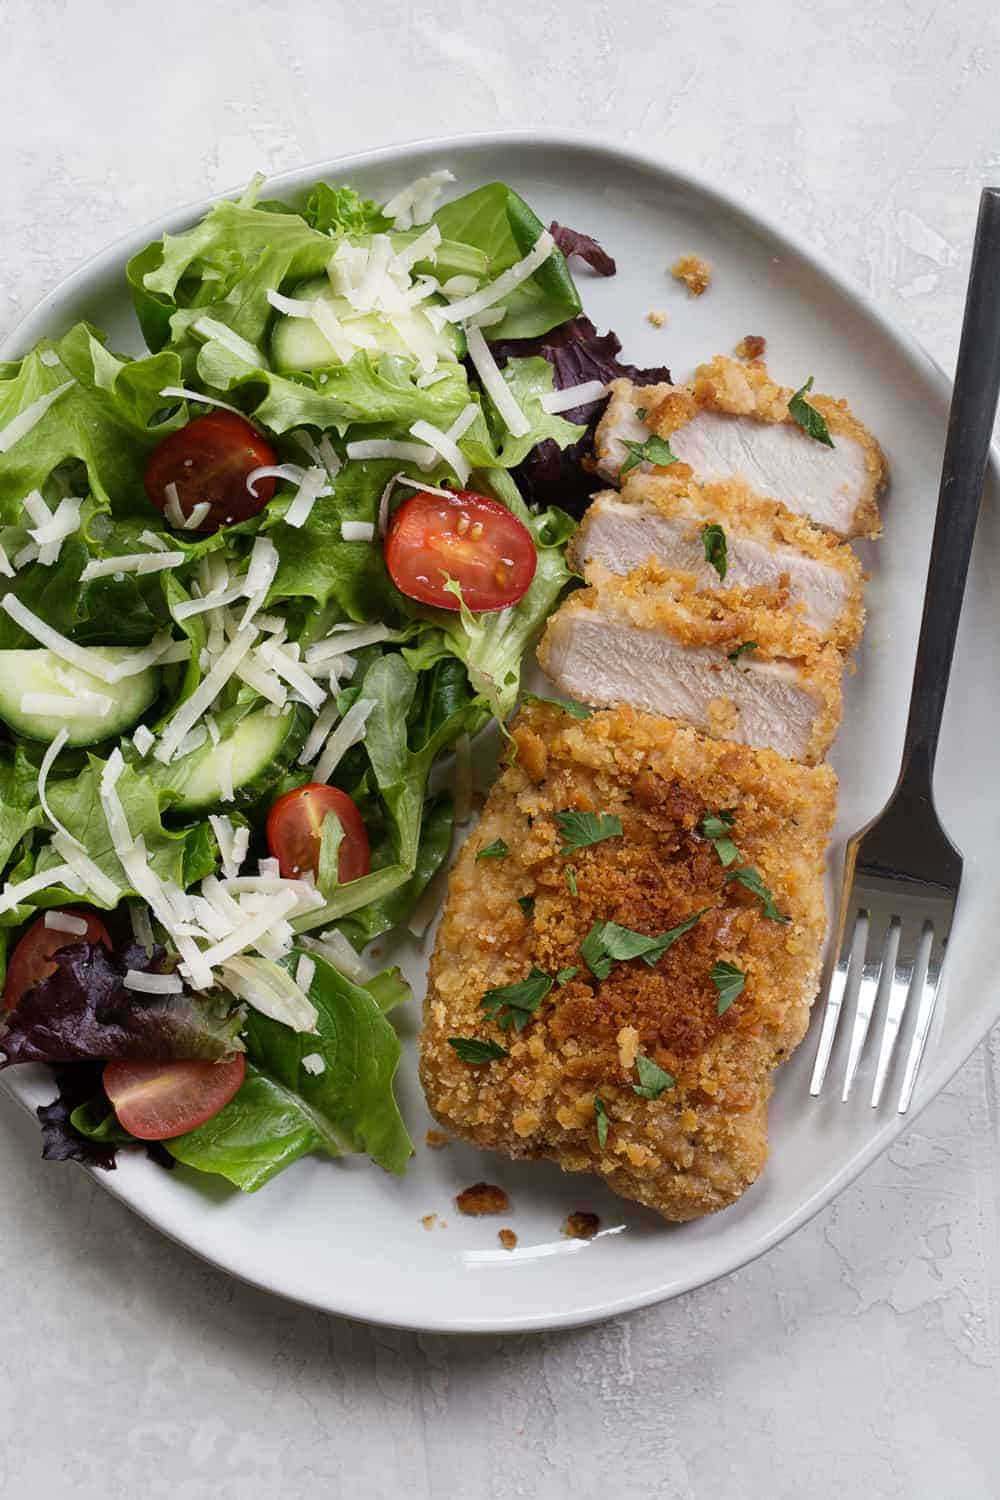 Easy Baked Pork Chops are as simple as they are delicious. Serve them up with potatoes and a crisp salad for weeknight dinner perfection.